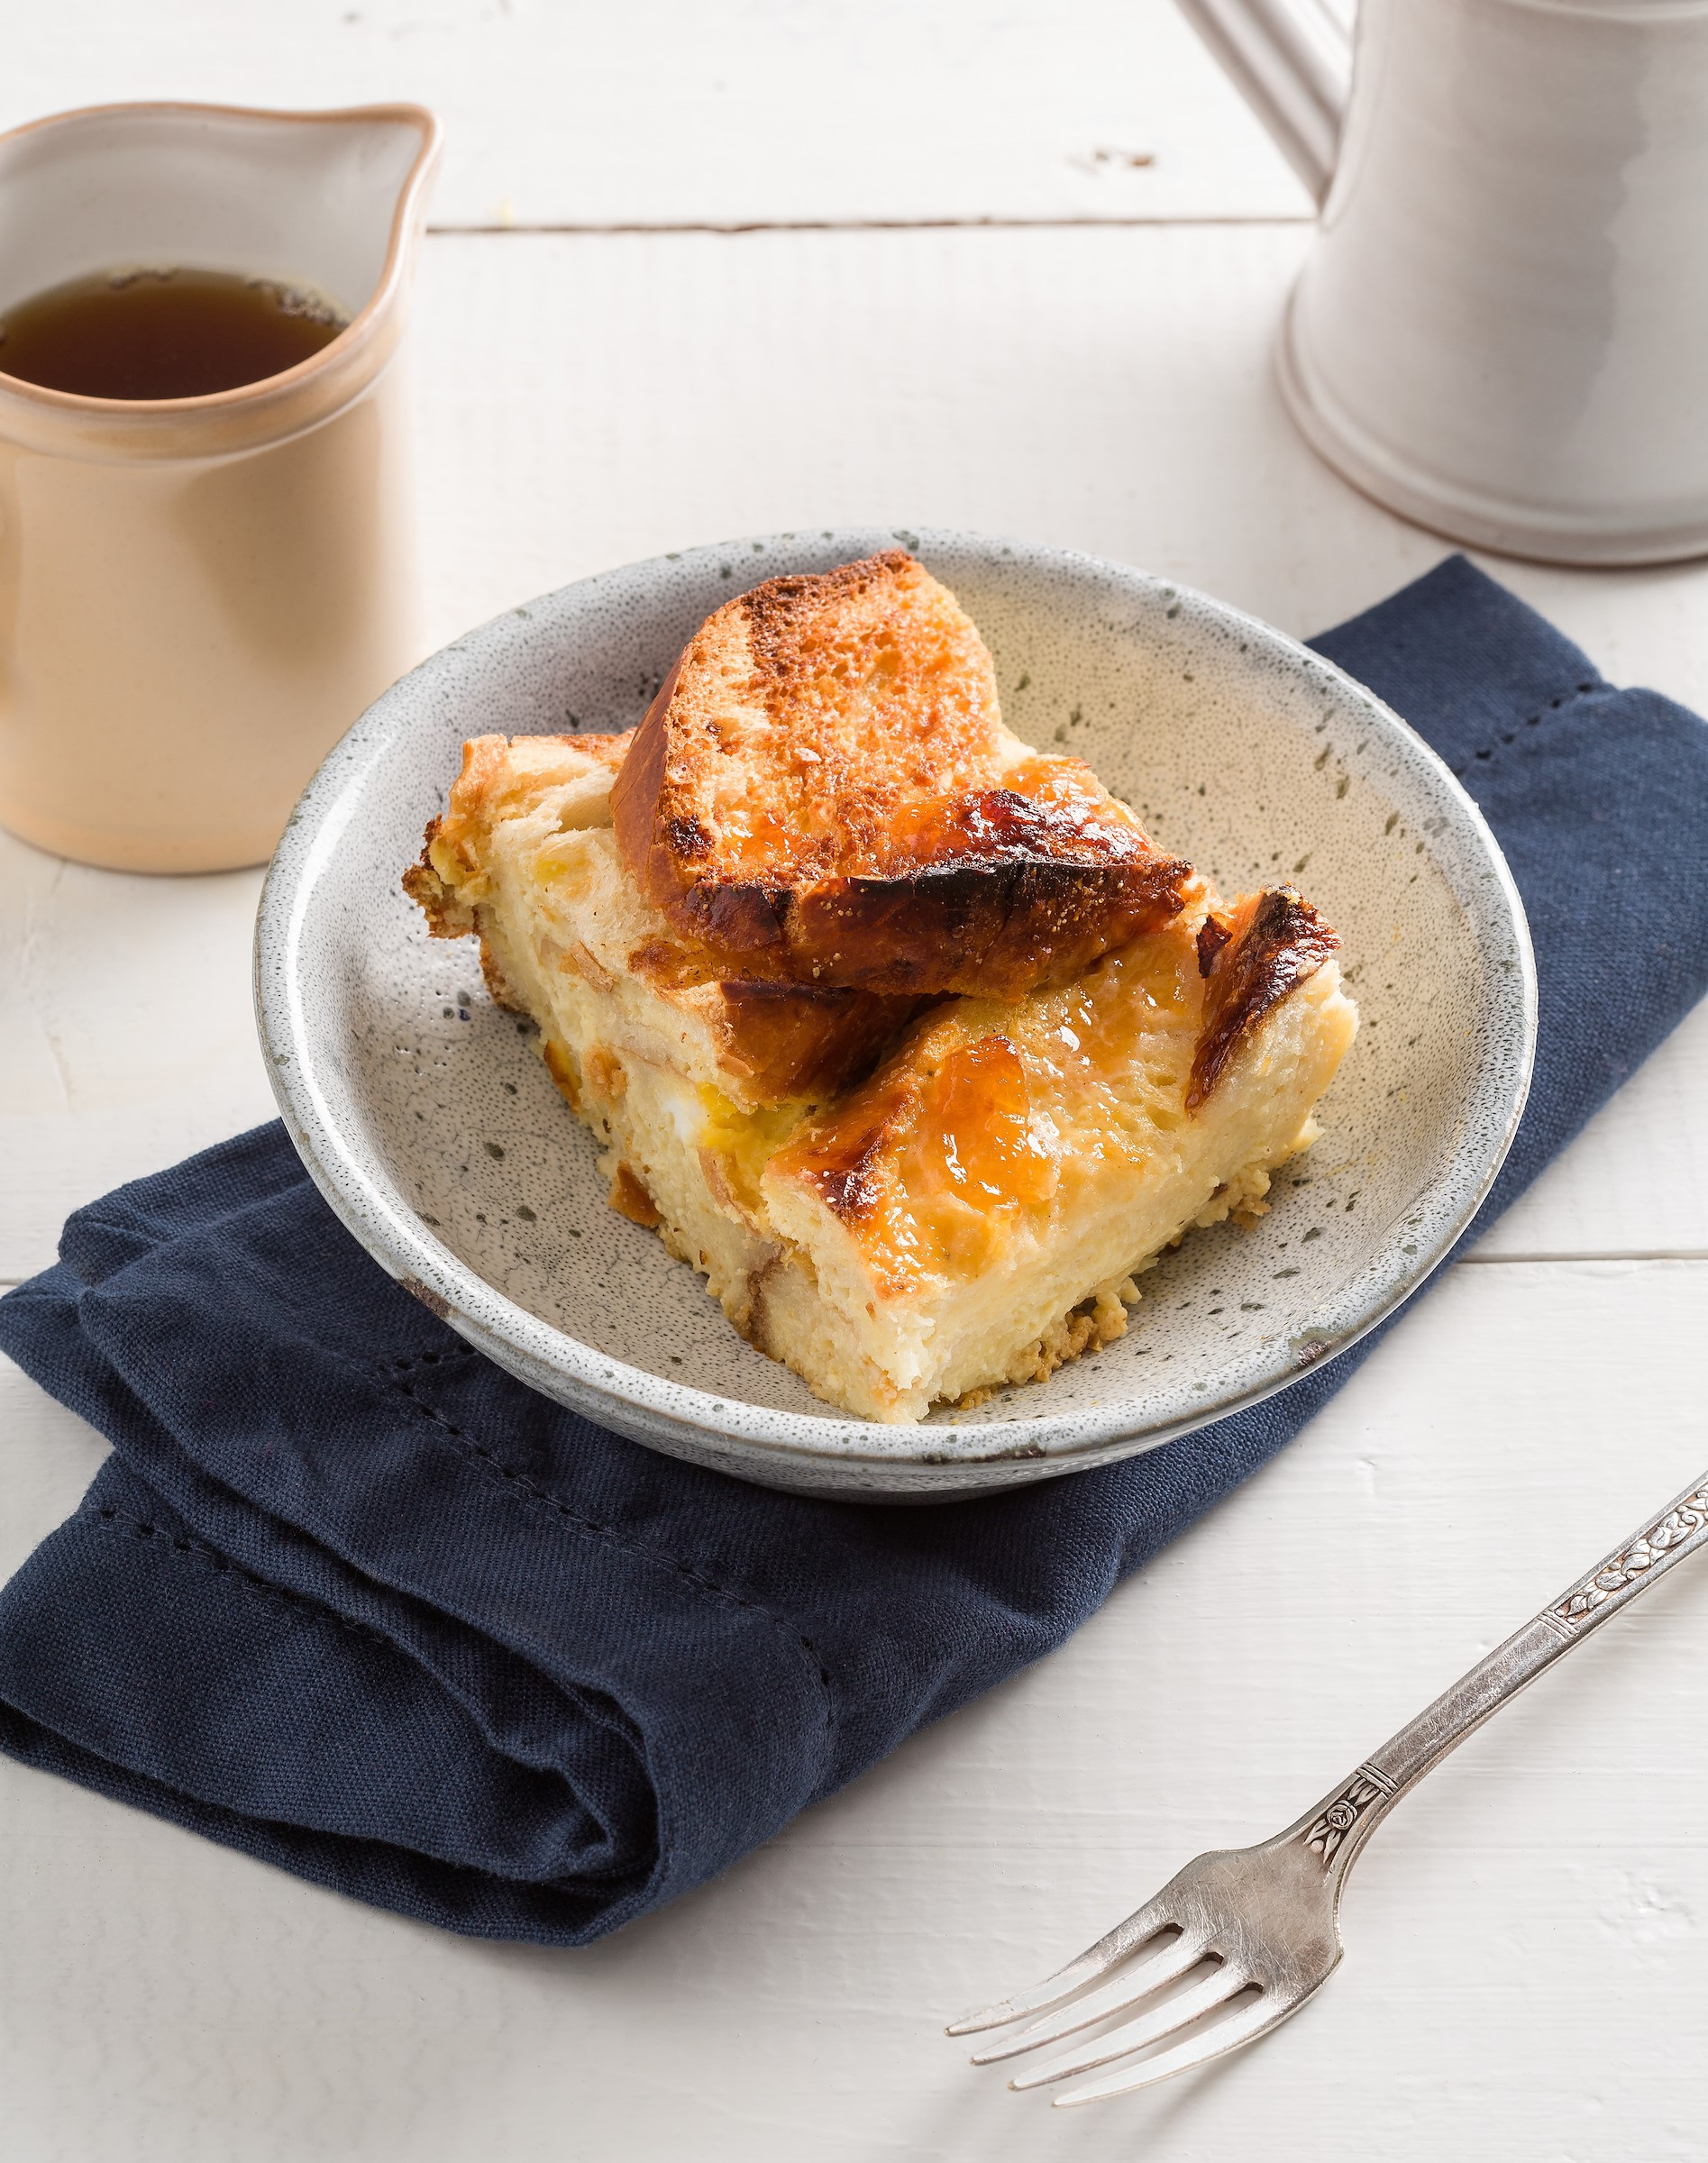 French Toast Casserole with Ben and Jerry's Vanilla Ice Cream